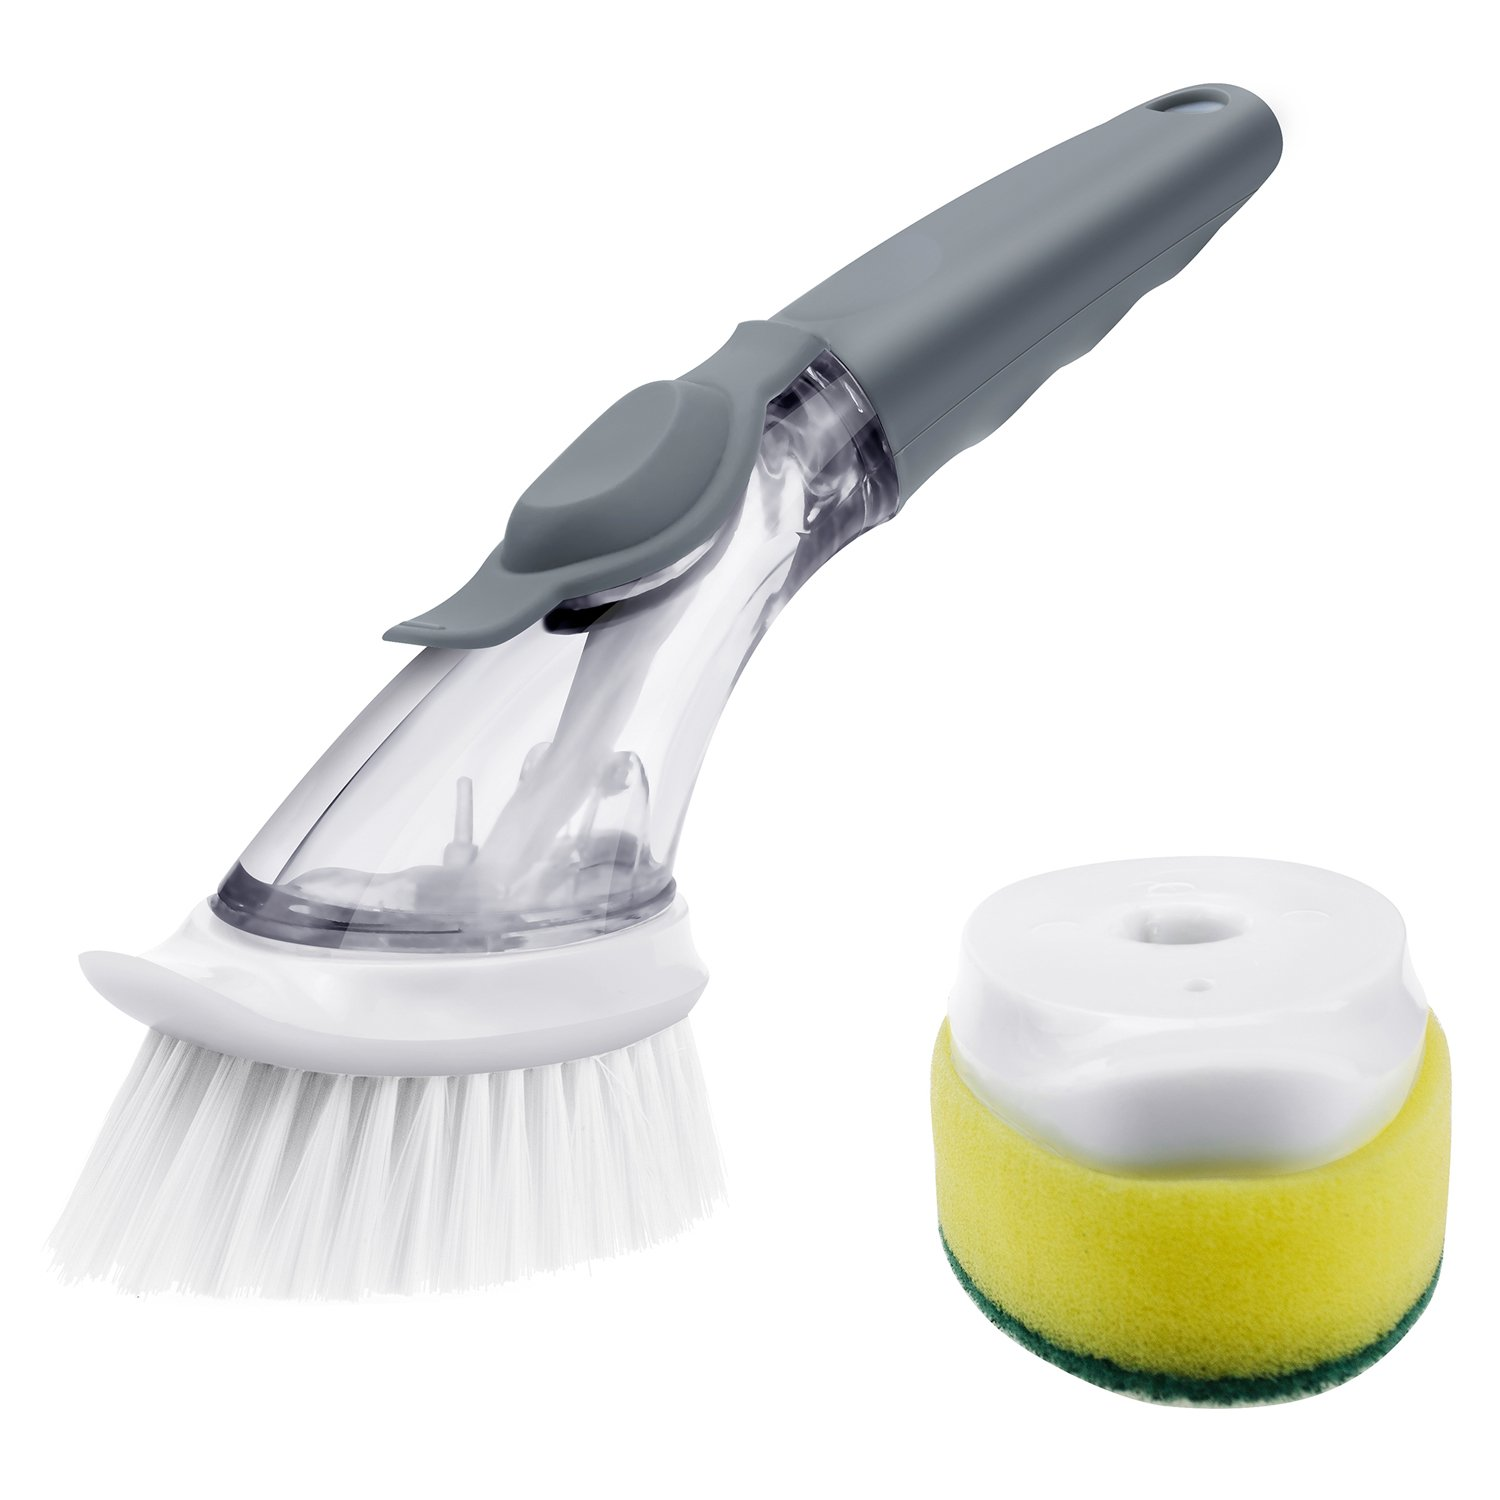 FRMARCH Good Grips Soap Dispensing Dish Brush and Sponge Set